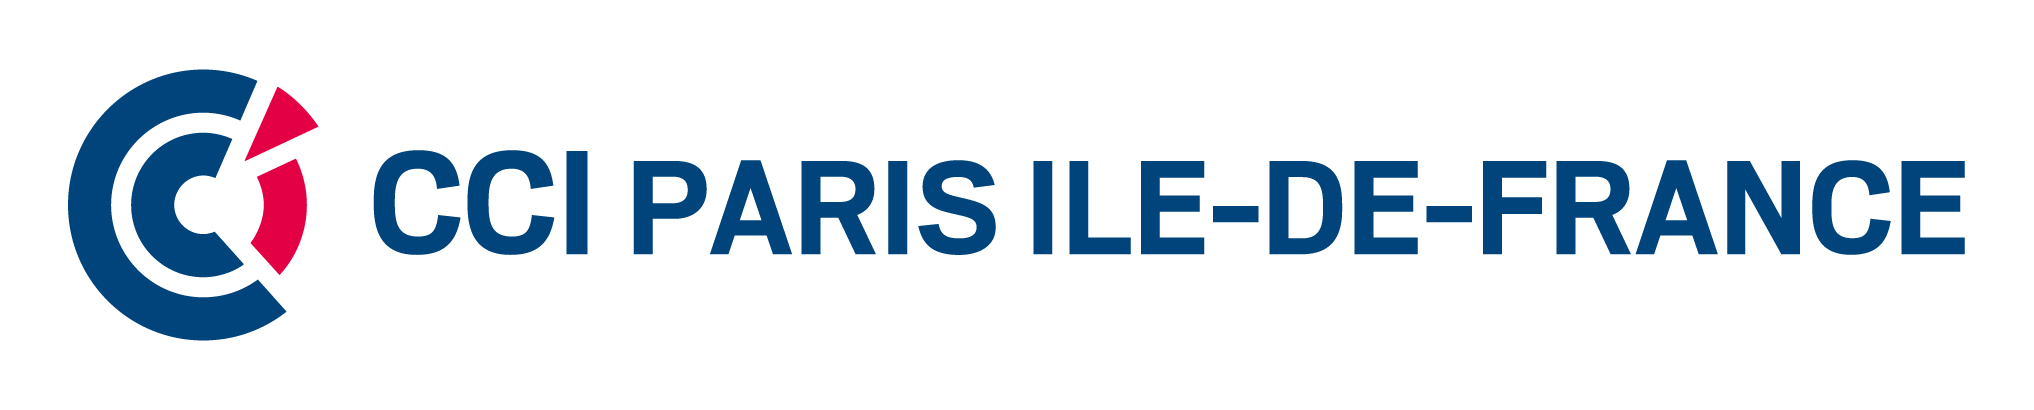 logo - CCI Paris Ile-de-France